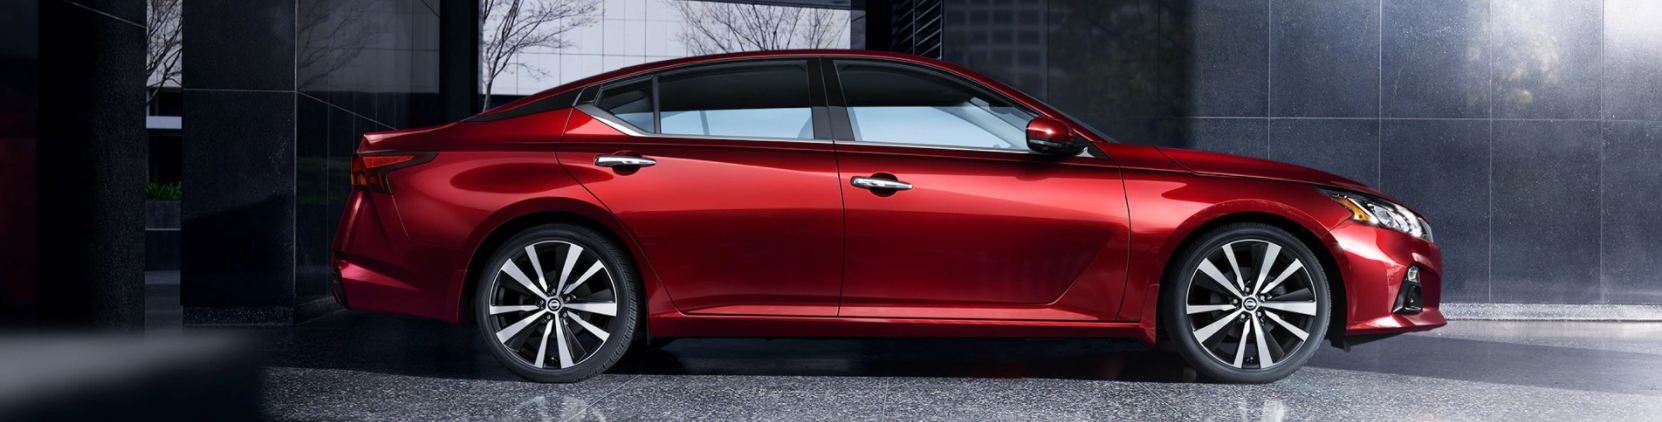 2021 Nissan Altima - Red Sedan